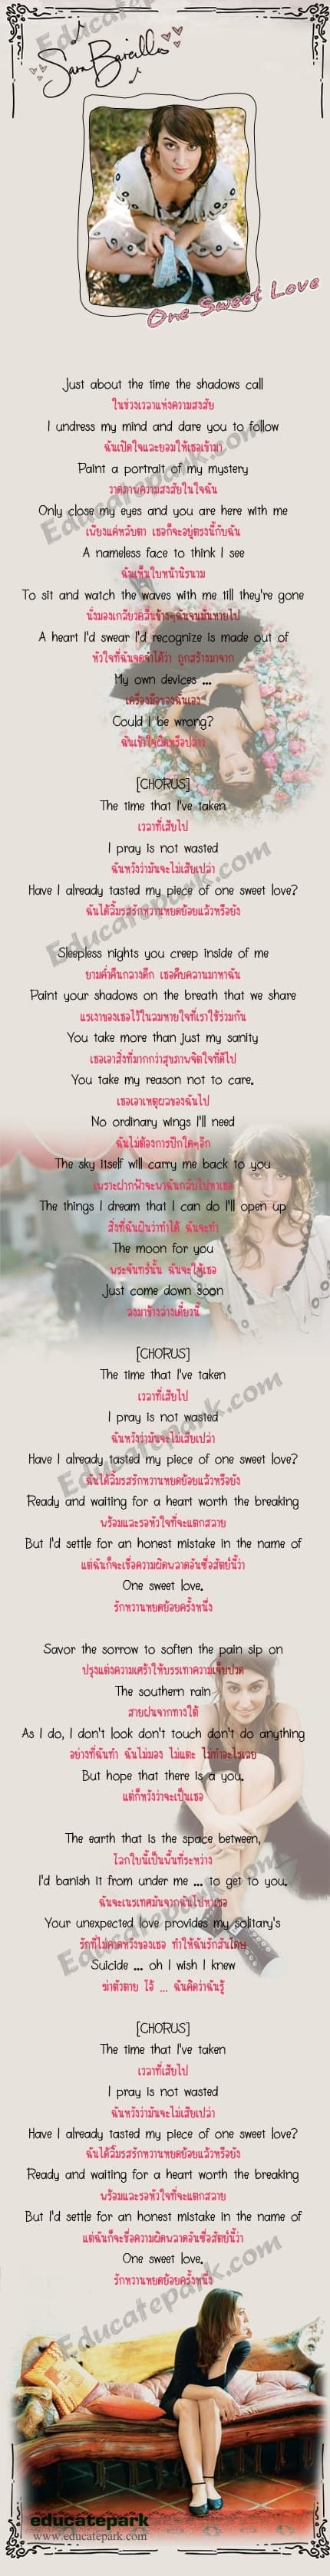 แปลเพลง One Sweet Love - Sara Bareilles